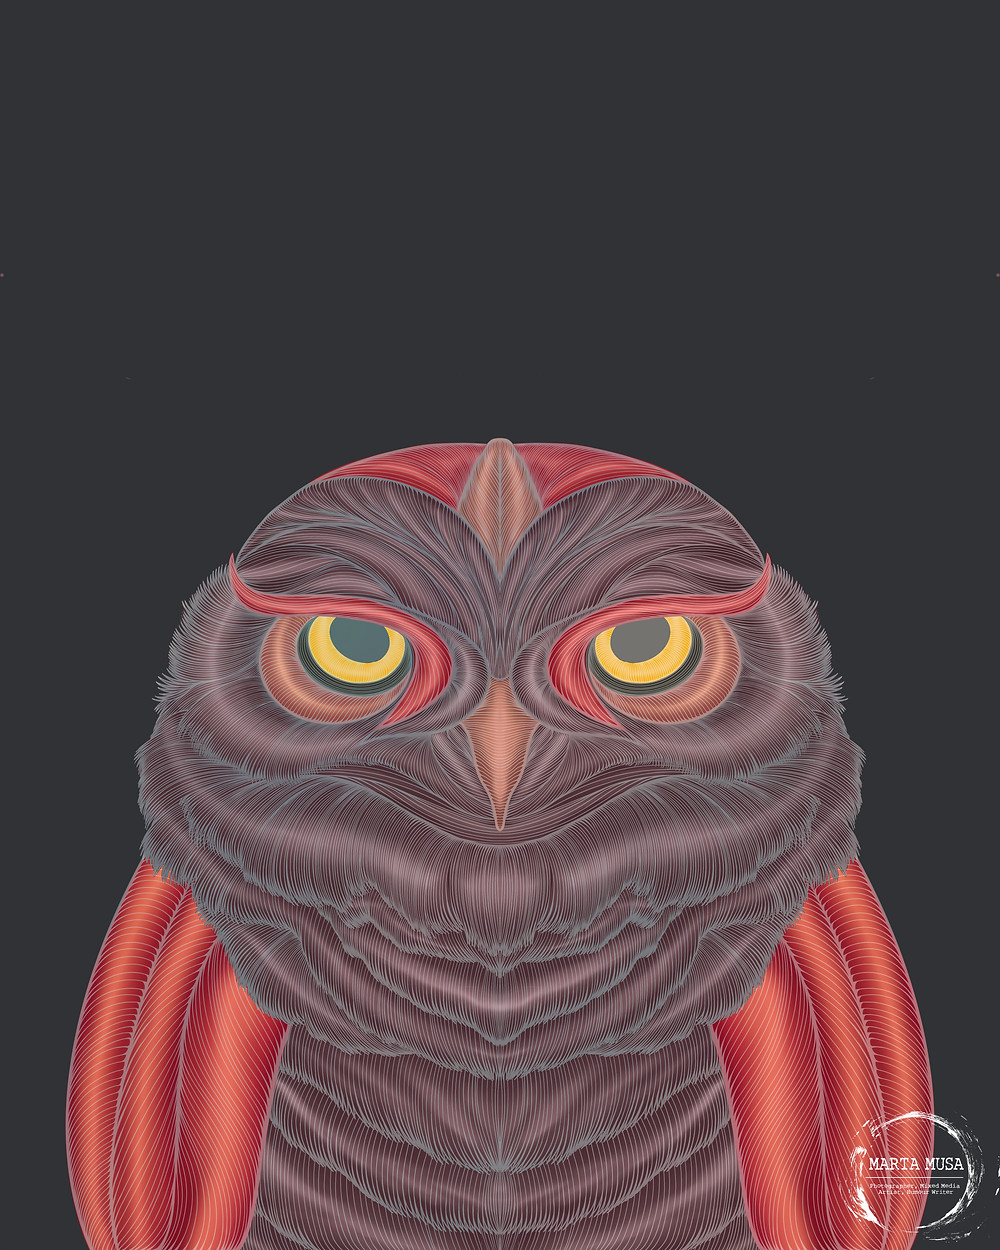 Contour line drawing of an owl.  The body is coloured in shades of purple and pink.  The contour lines are in shades of silver.  The owl is drawn against a dark blue background